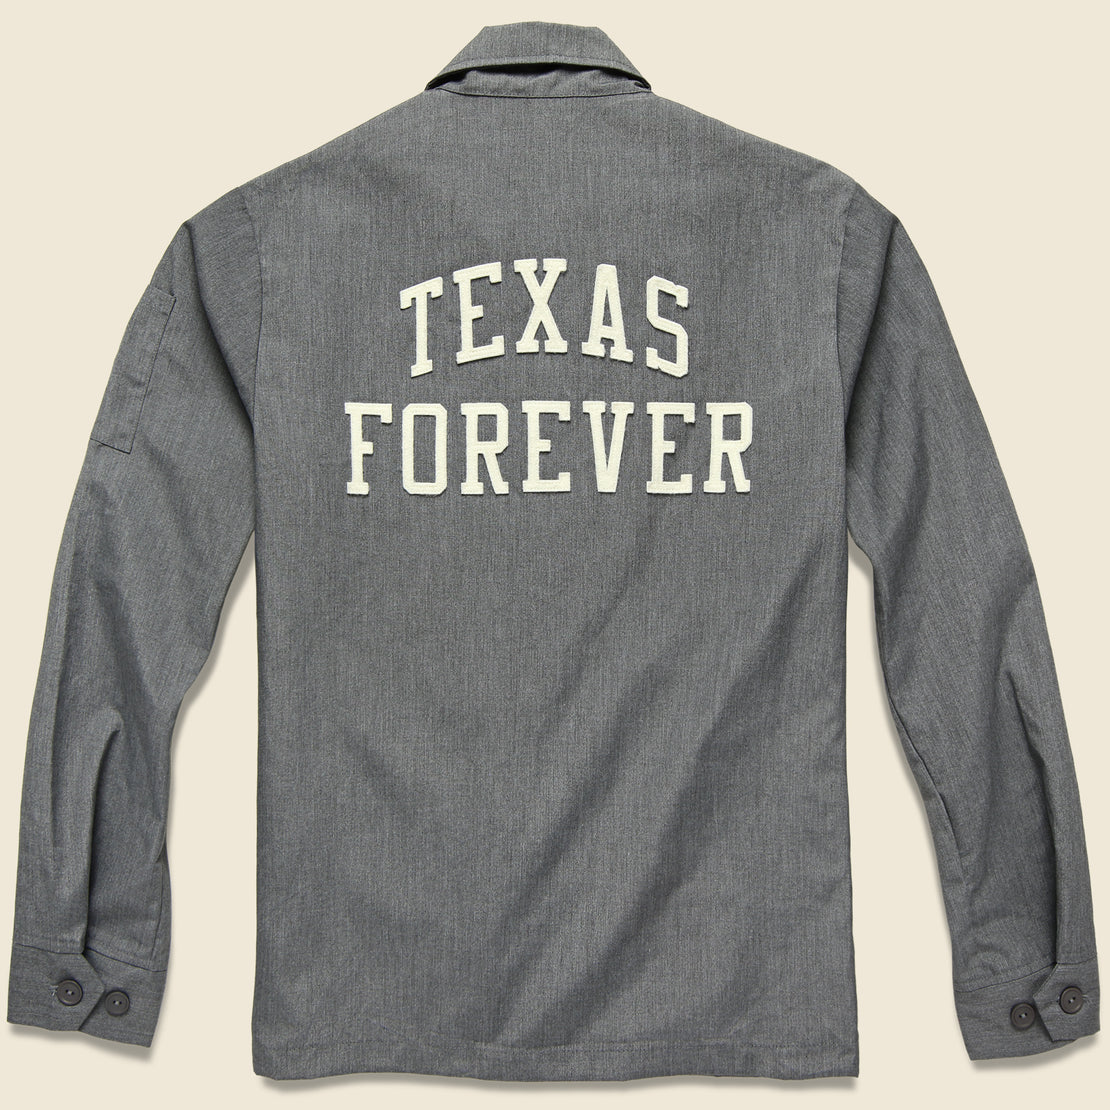 Texas Forever Work Jacket - Grey